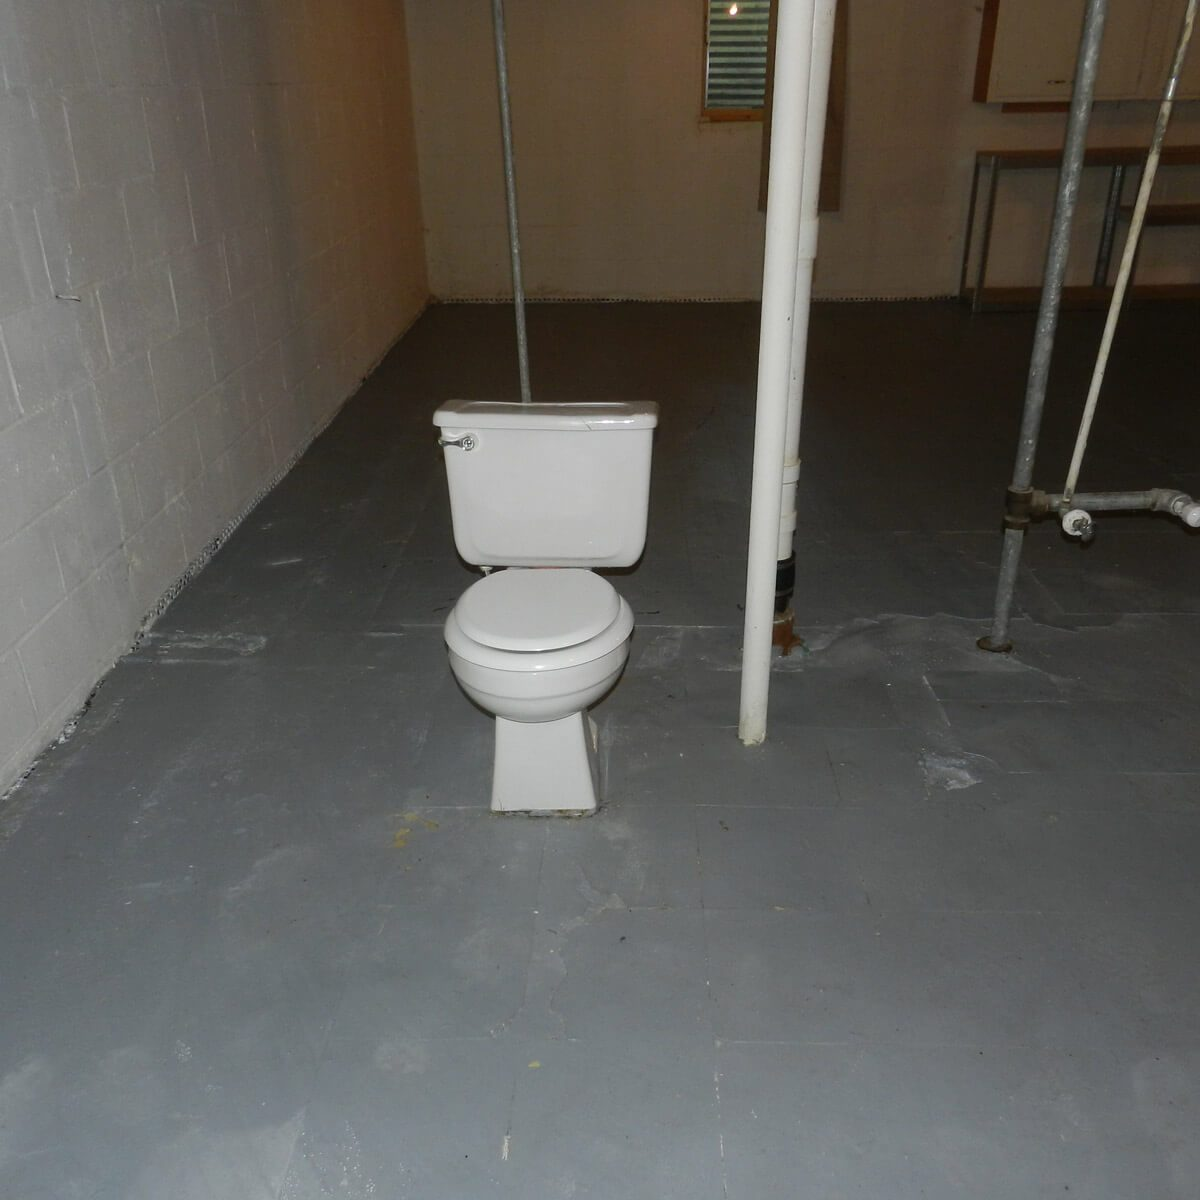 Porcelain throne for the uninhibited